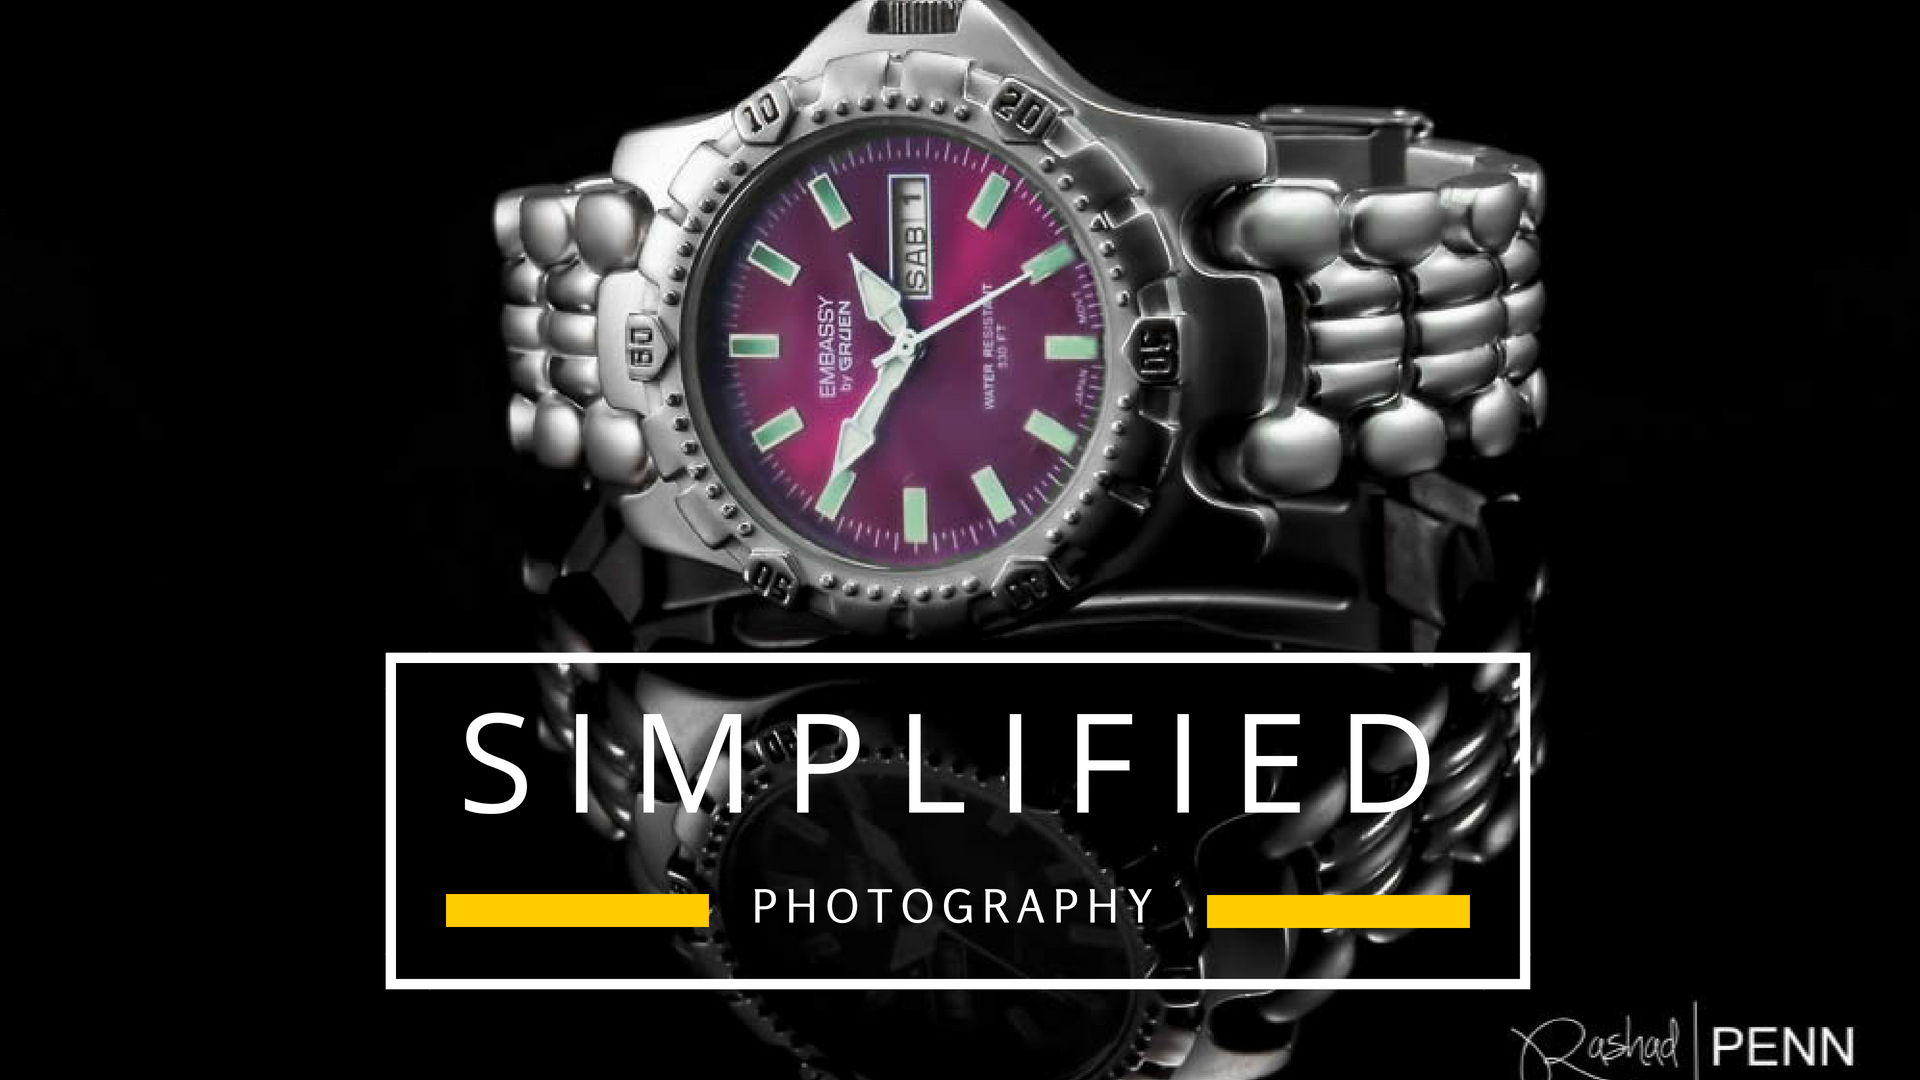 Simplified Jewelry Photography